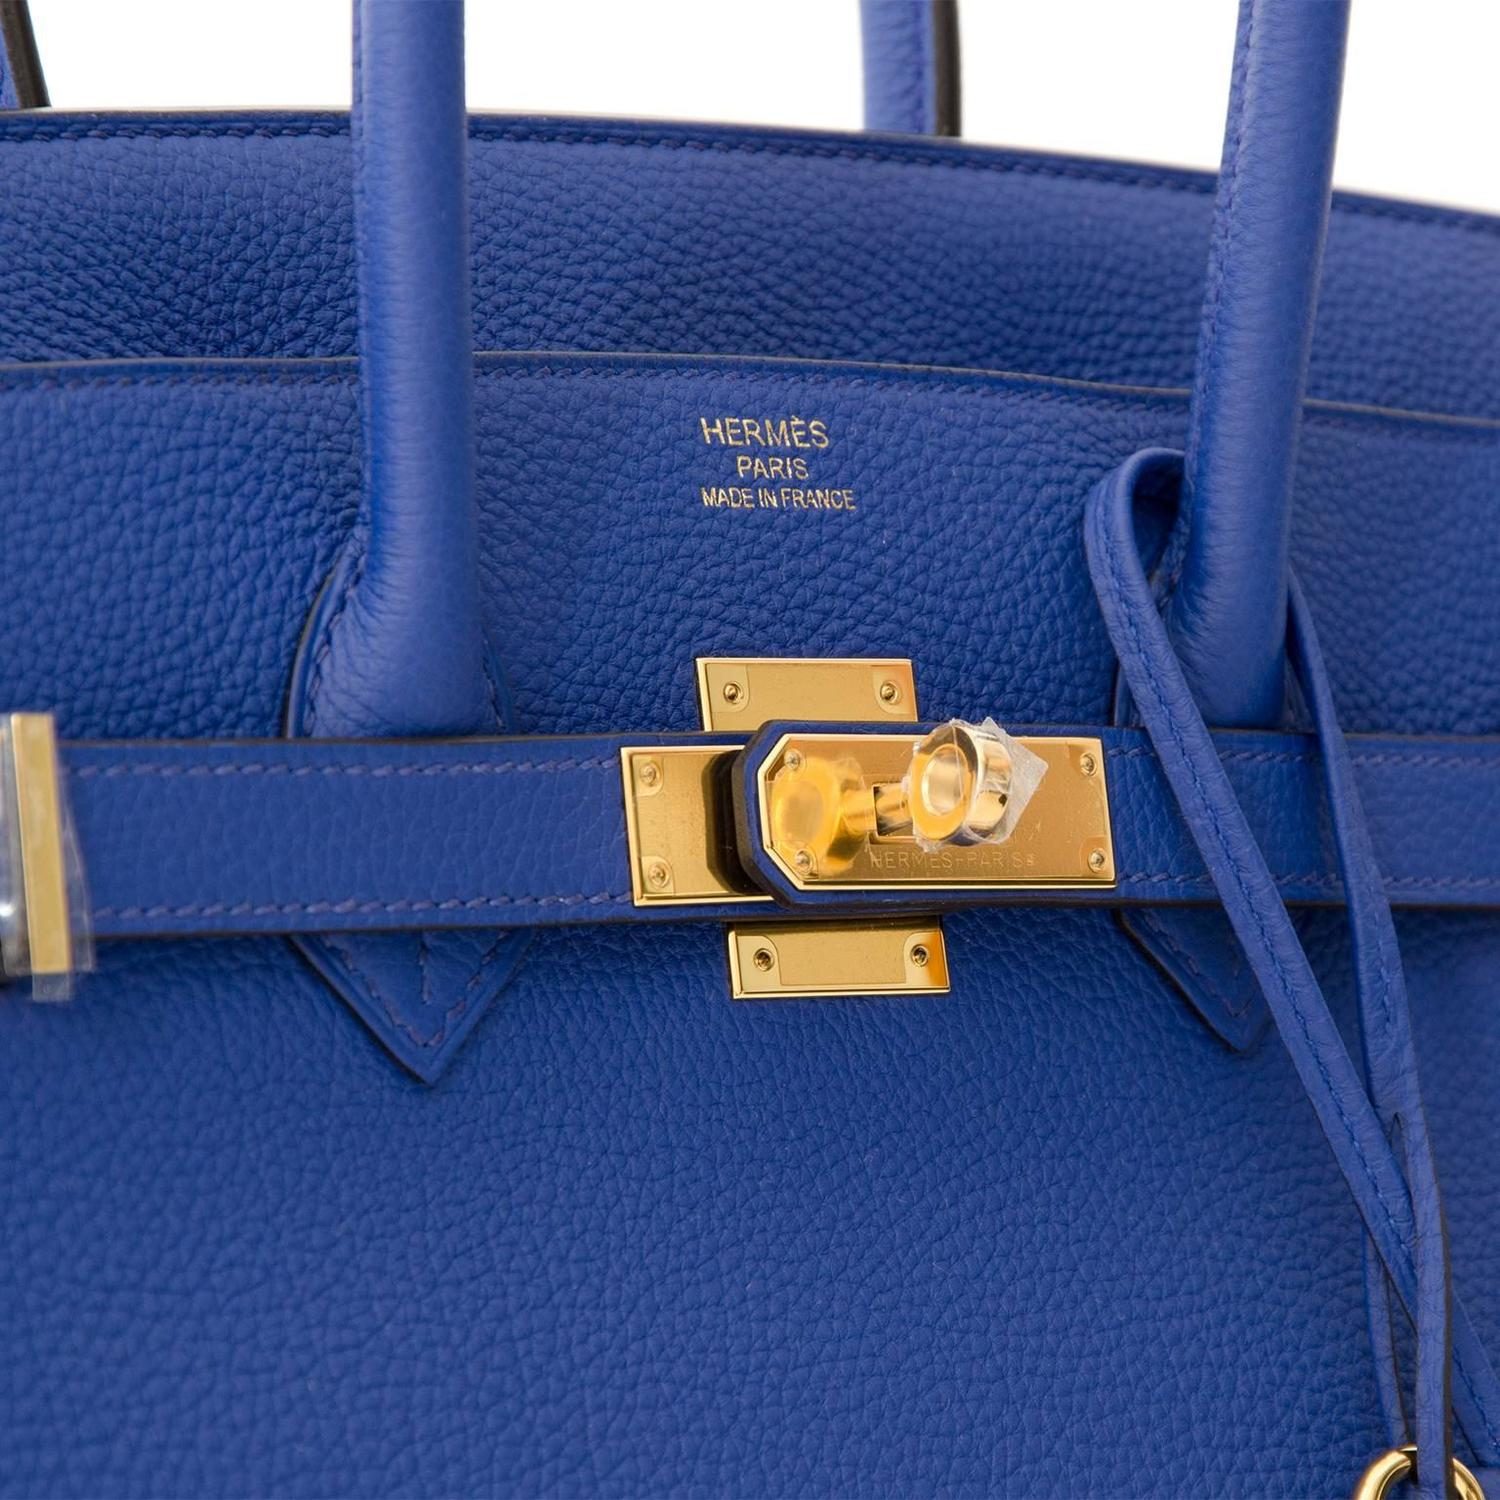 ... low price brand new hermès birkin 35 blue electrique togo ghw at  1stdibs 149e3 80d7c ... b155d14150